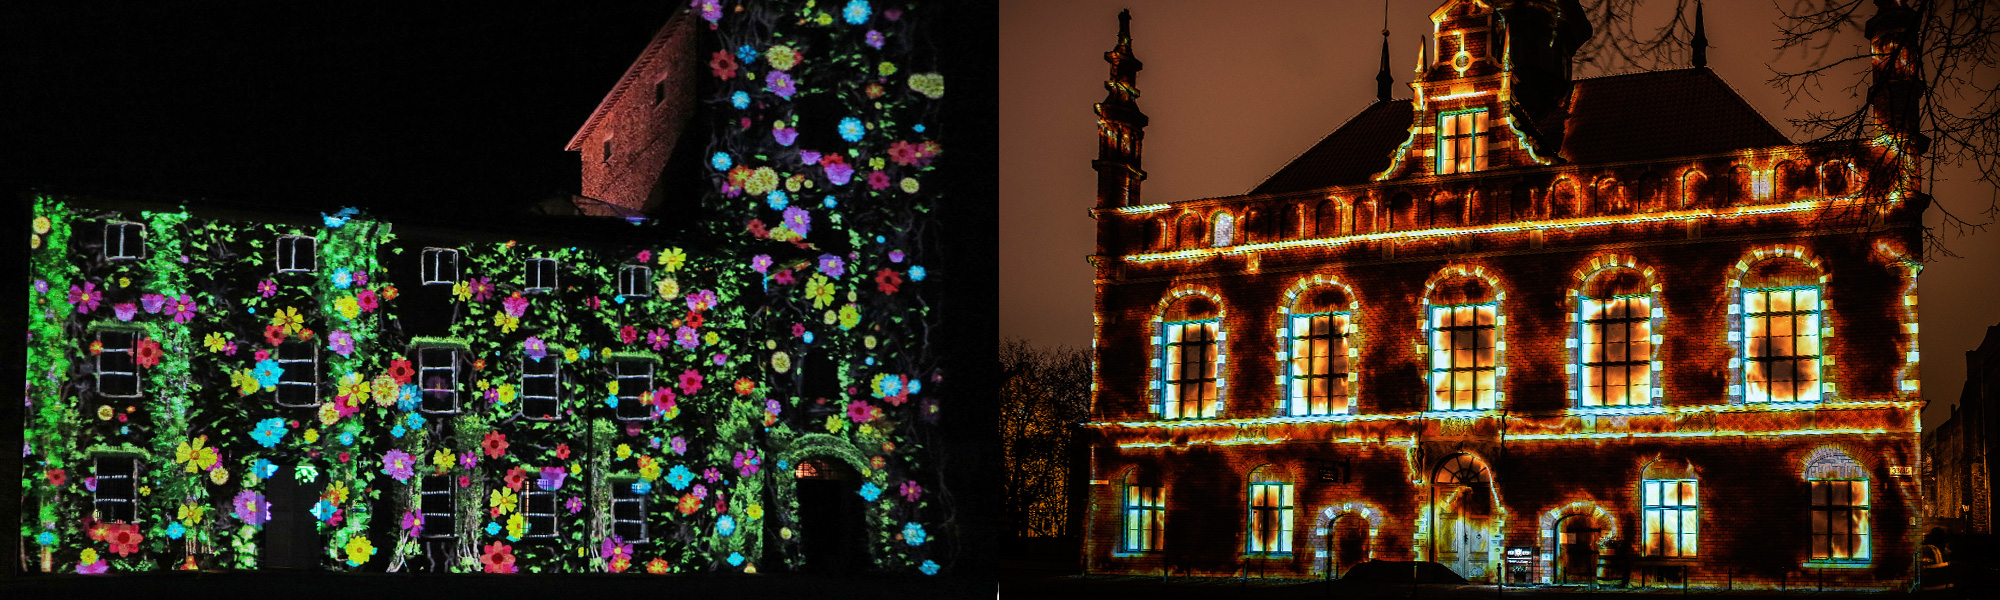 Video Mapping budynkow